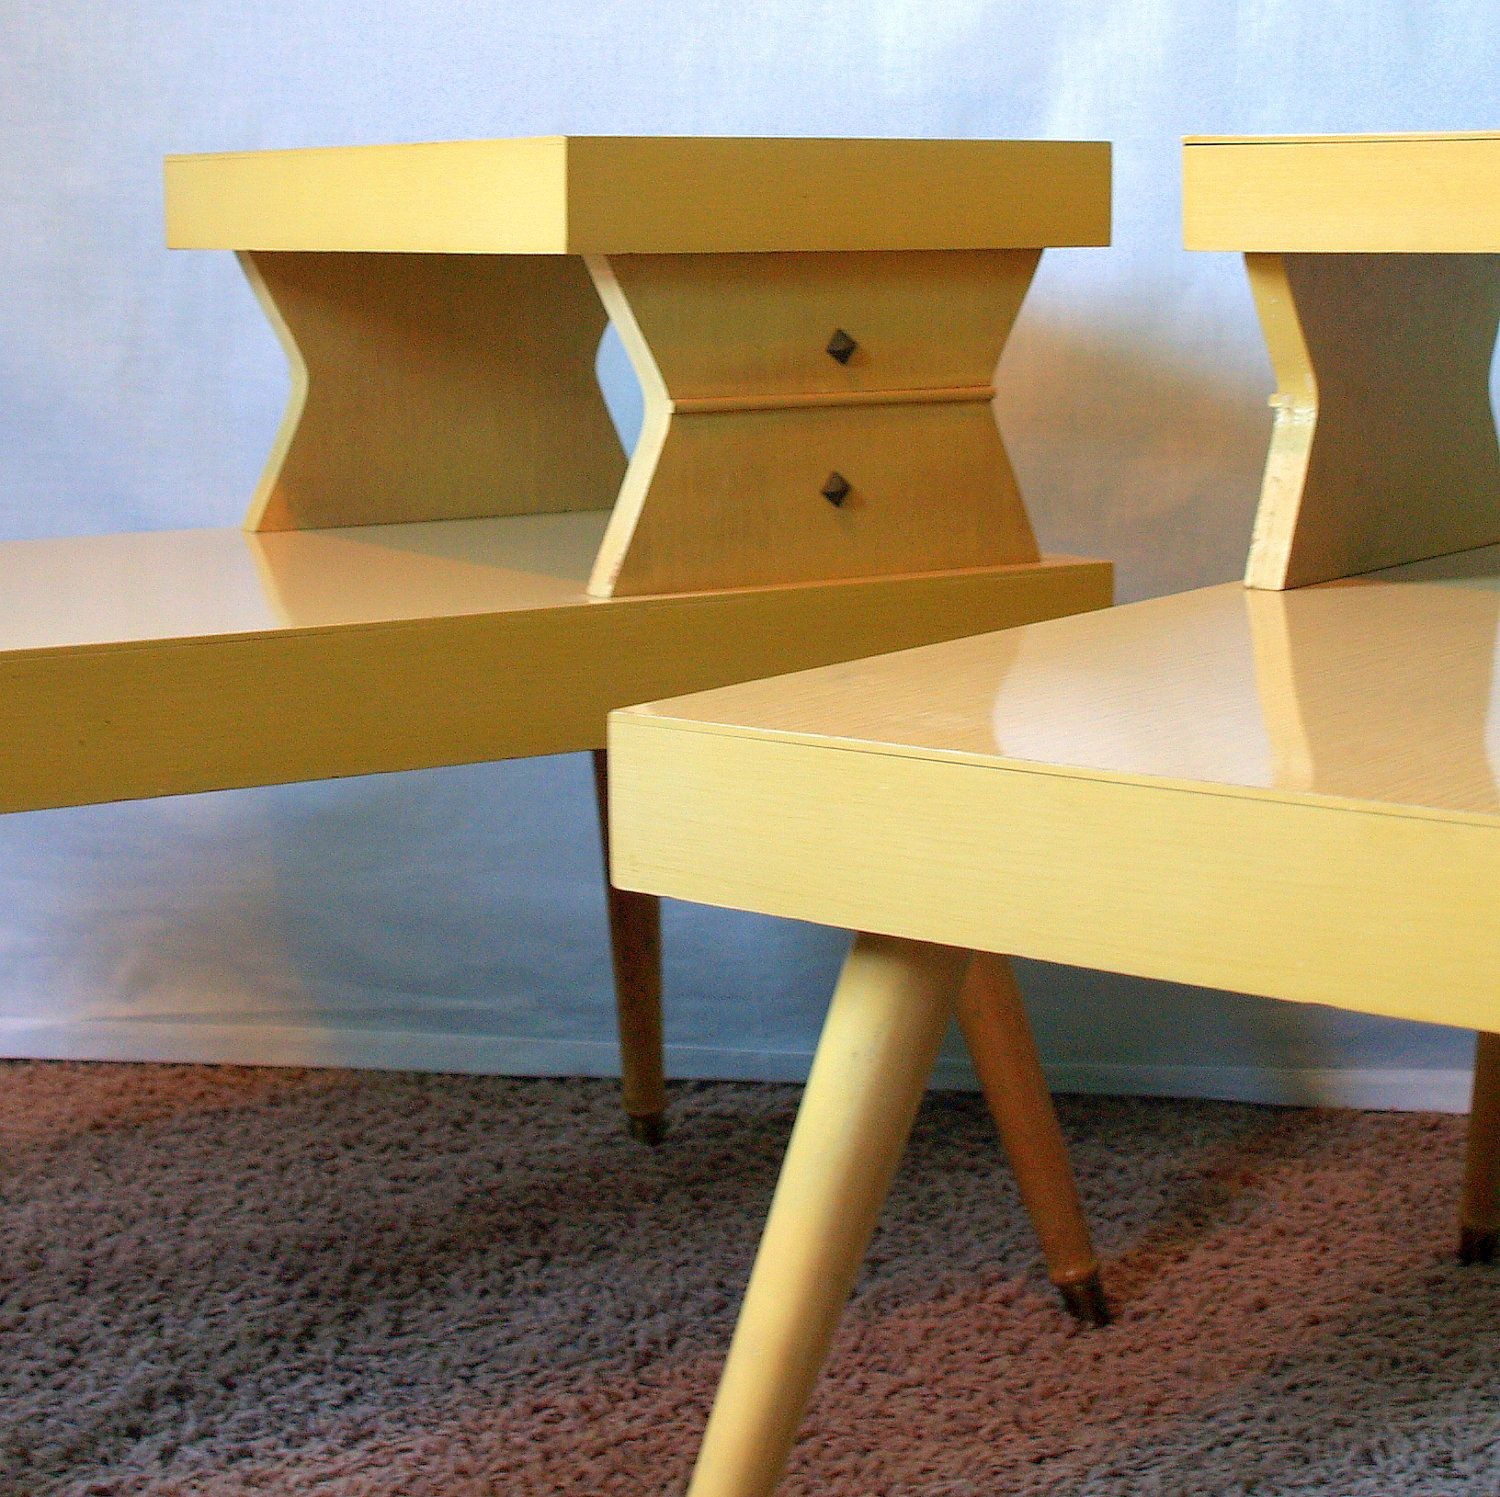 antique 's furniture  atomic end tables vintage s mid century  - antique 's furniture  atomic end tables vintage s mid century modernblonde  tiered end